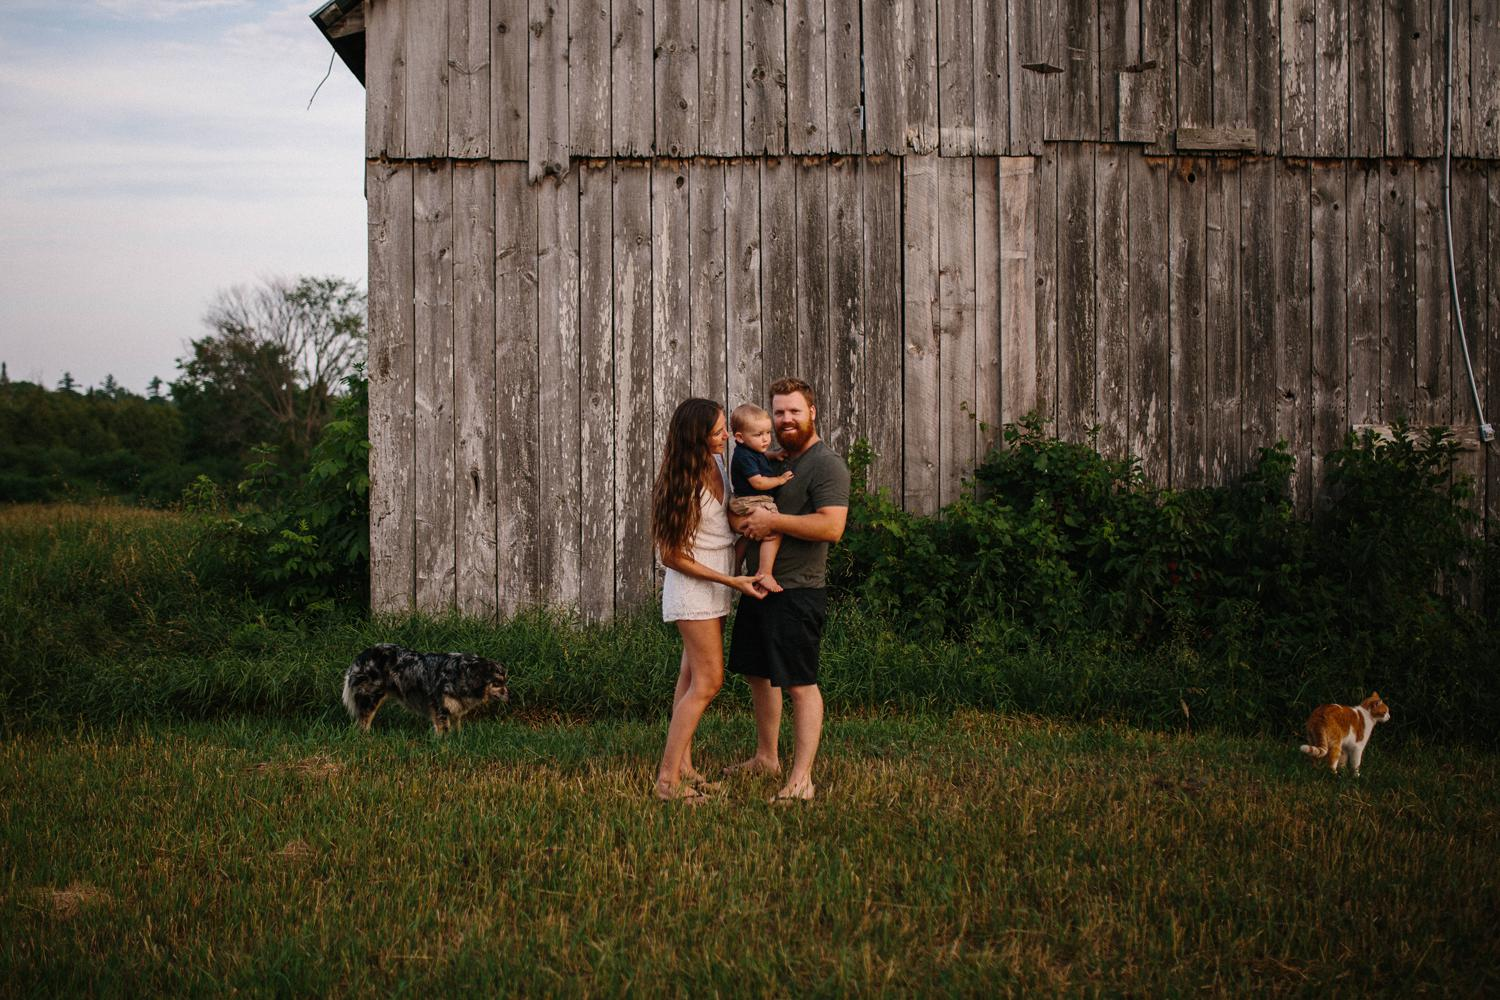 lanark highlands farm family photo session - kerry ford photography-035.jpg